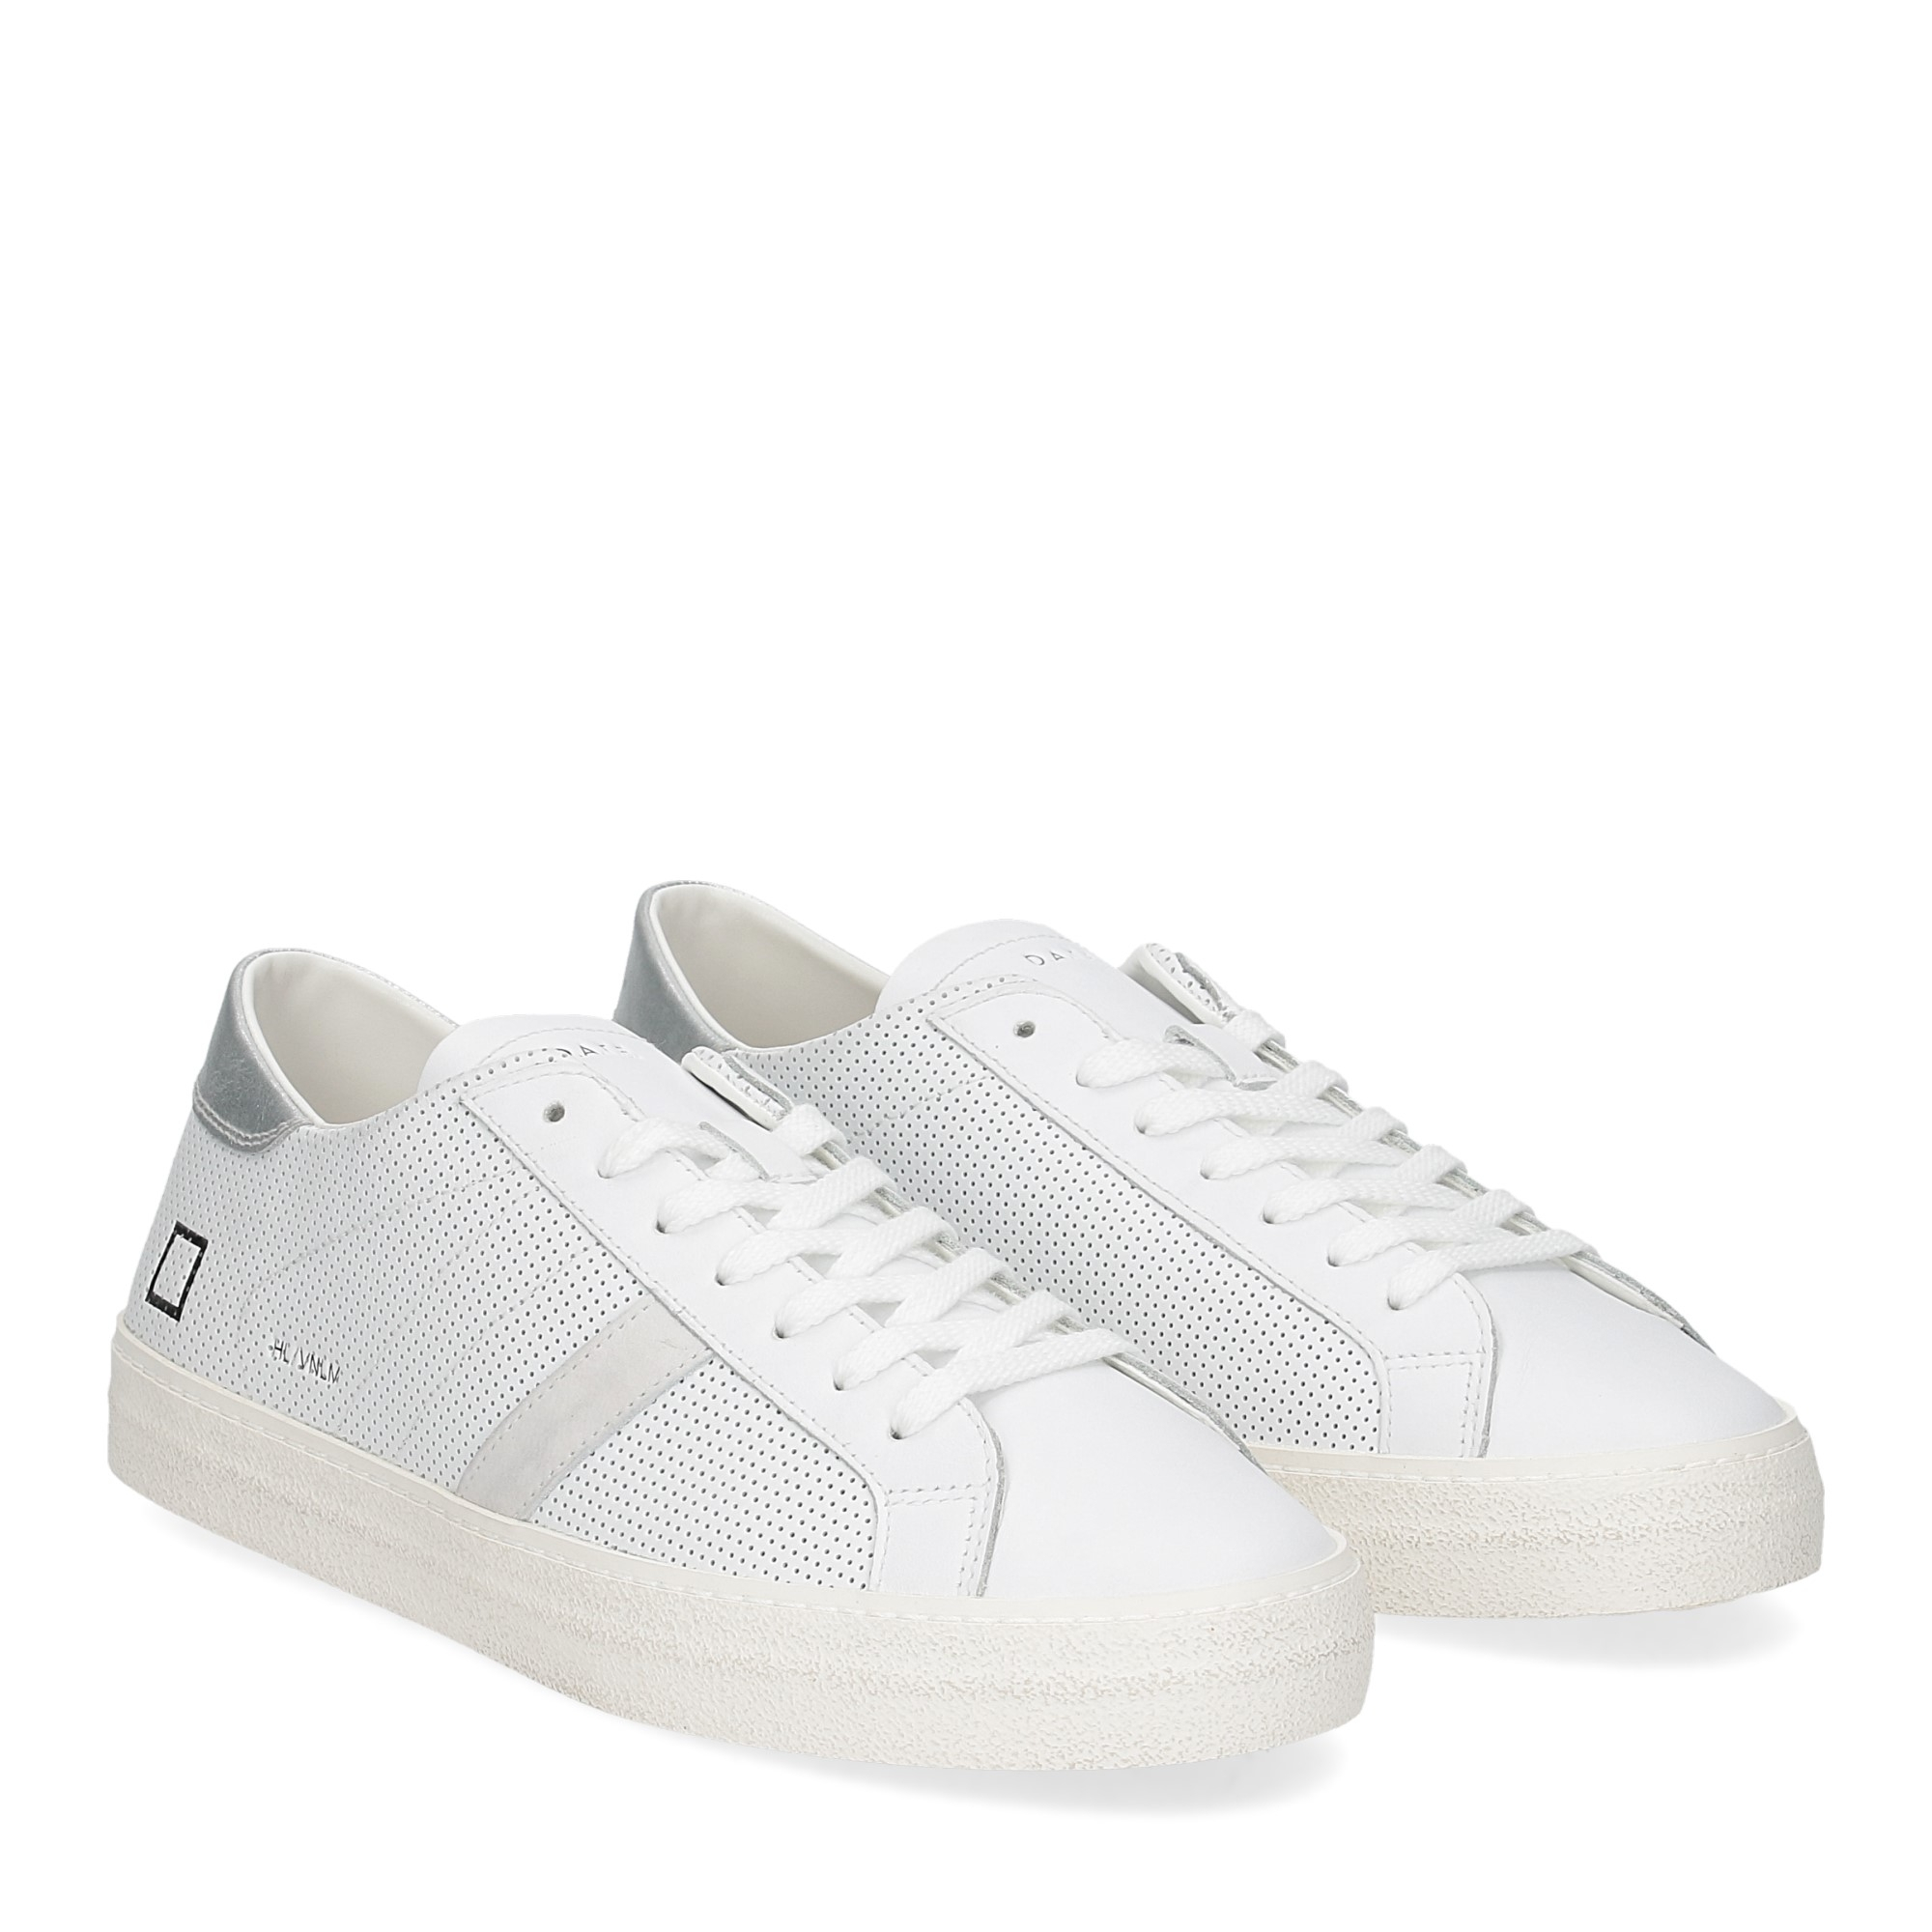 D.A.T.E. Hill low vintage perforated white silver